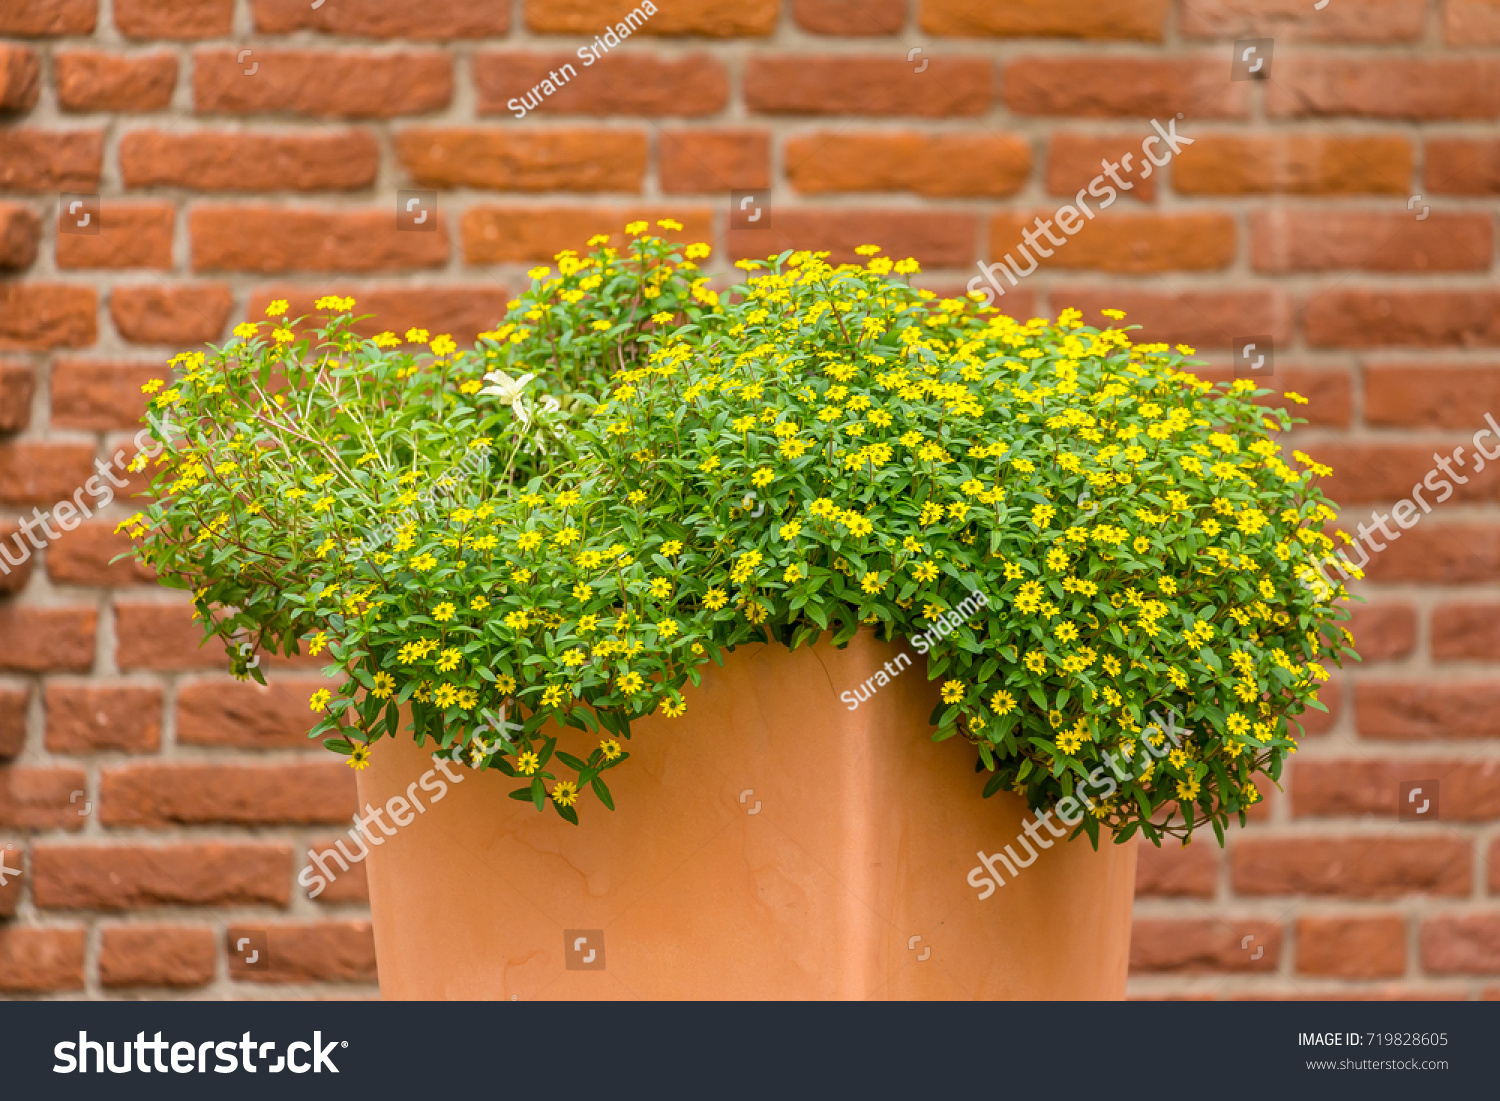 A beautiful flower pot on ground with a beautiful wall.